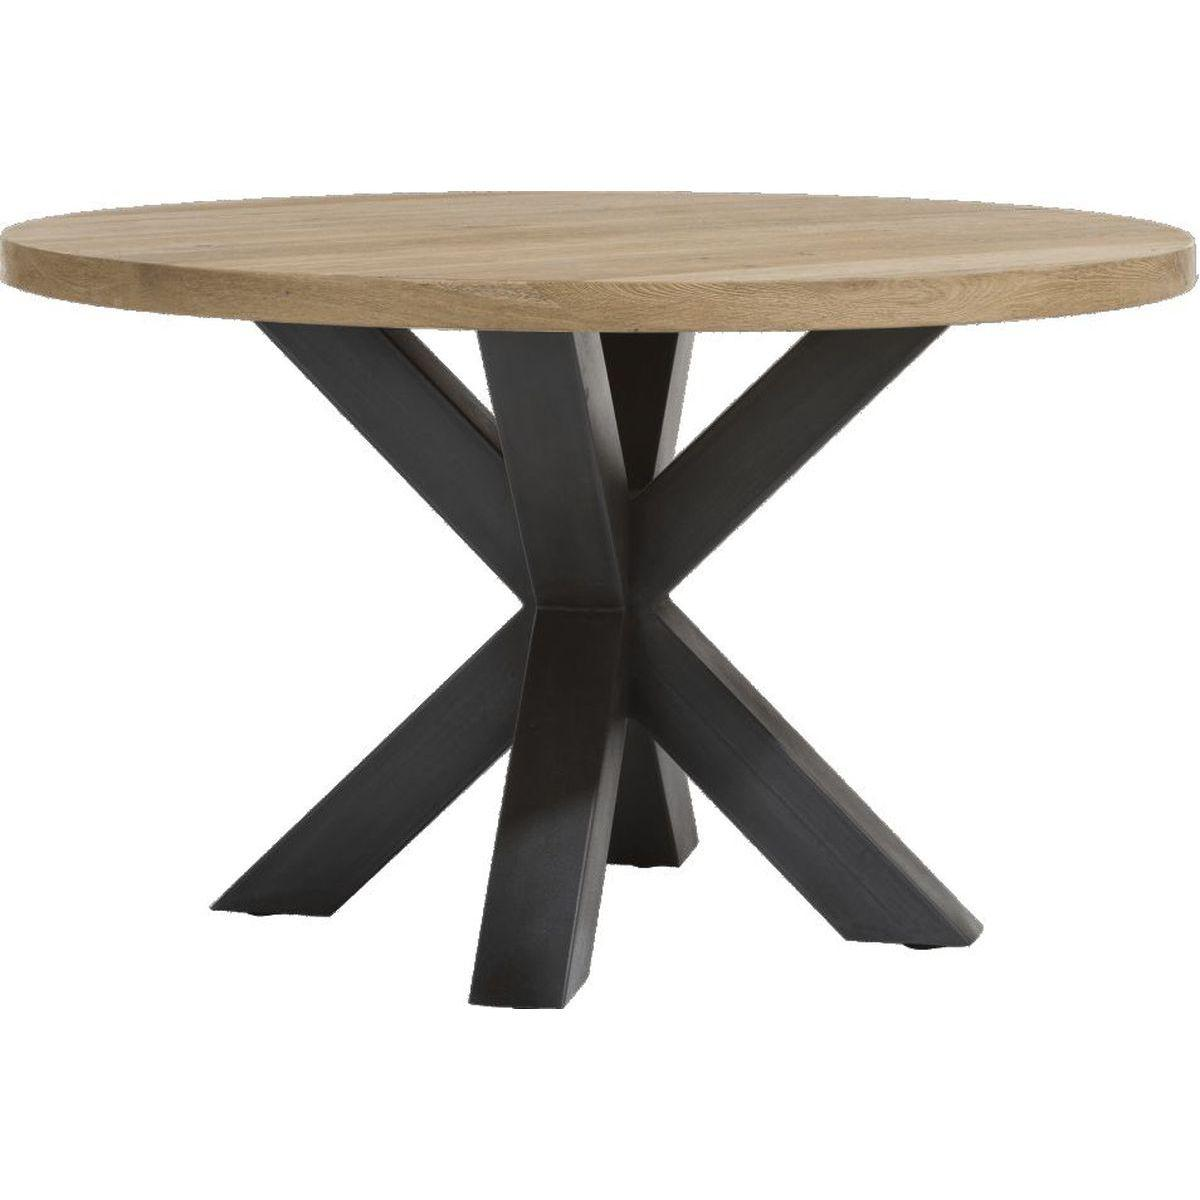 Table Ronde 130 Cm.Table Ronde 130cm Metalox Henders Hazel